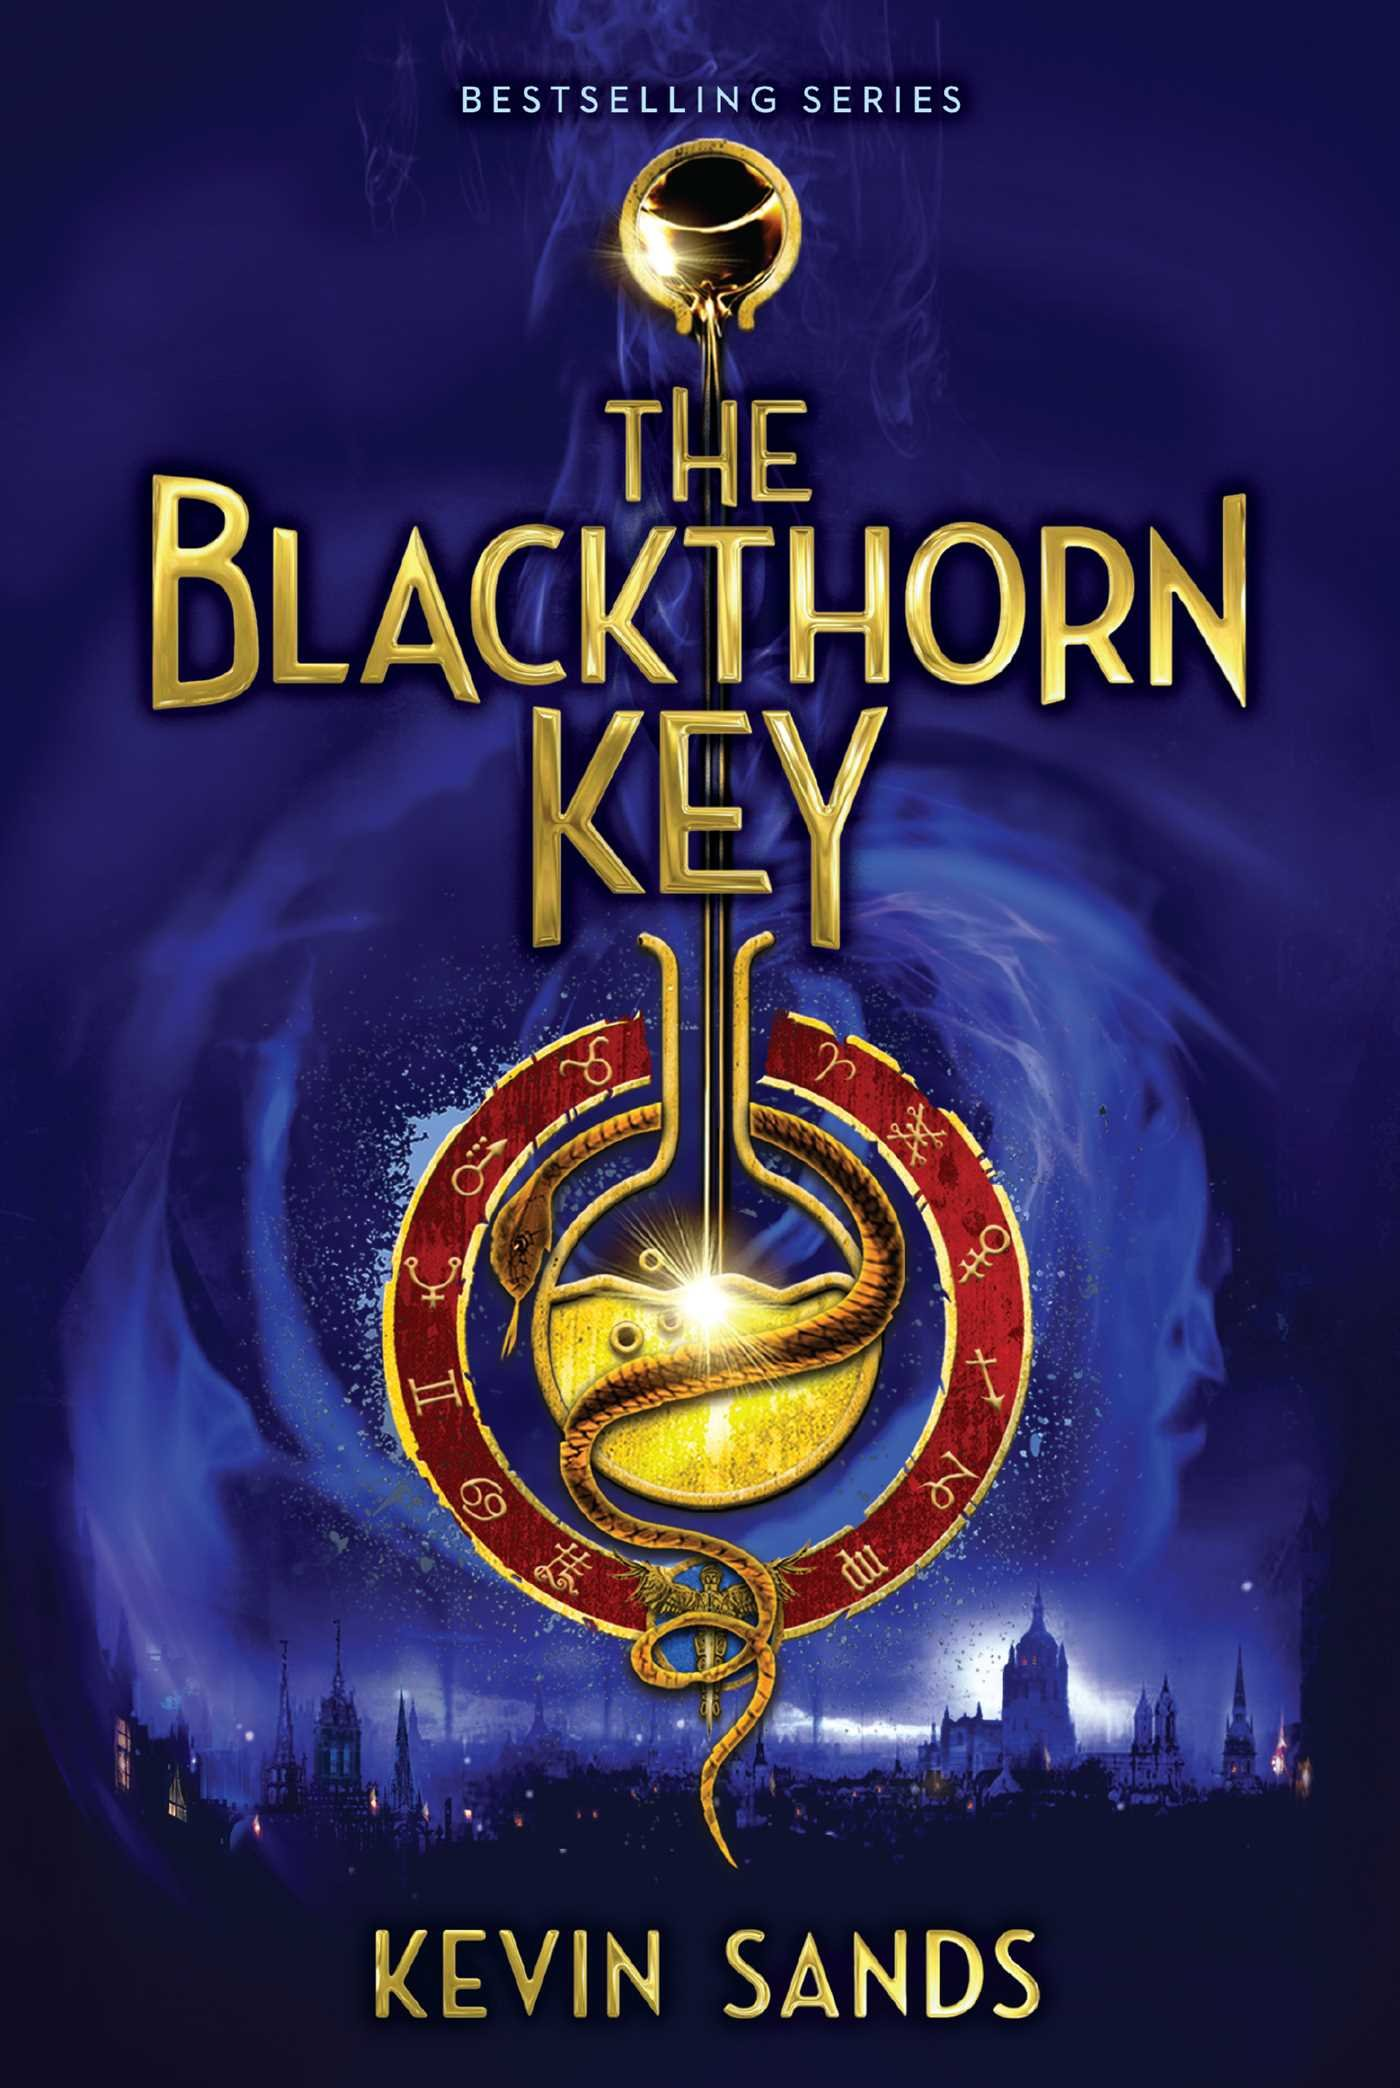 The Blackthorn Key (Volume 1): Sands, Kevin: 9781481446525: Books - Amazon.ca